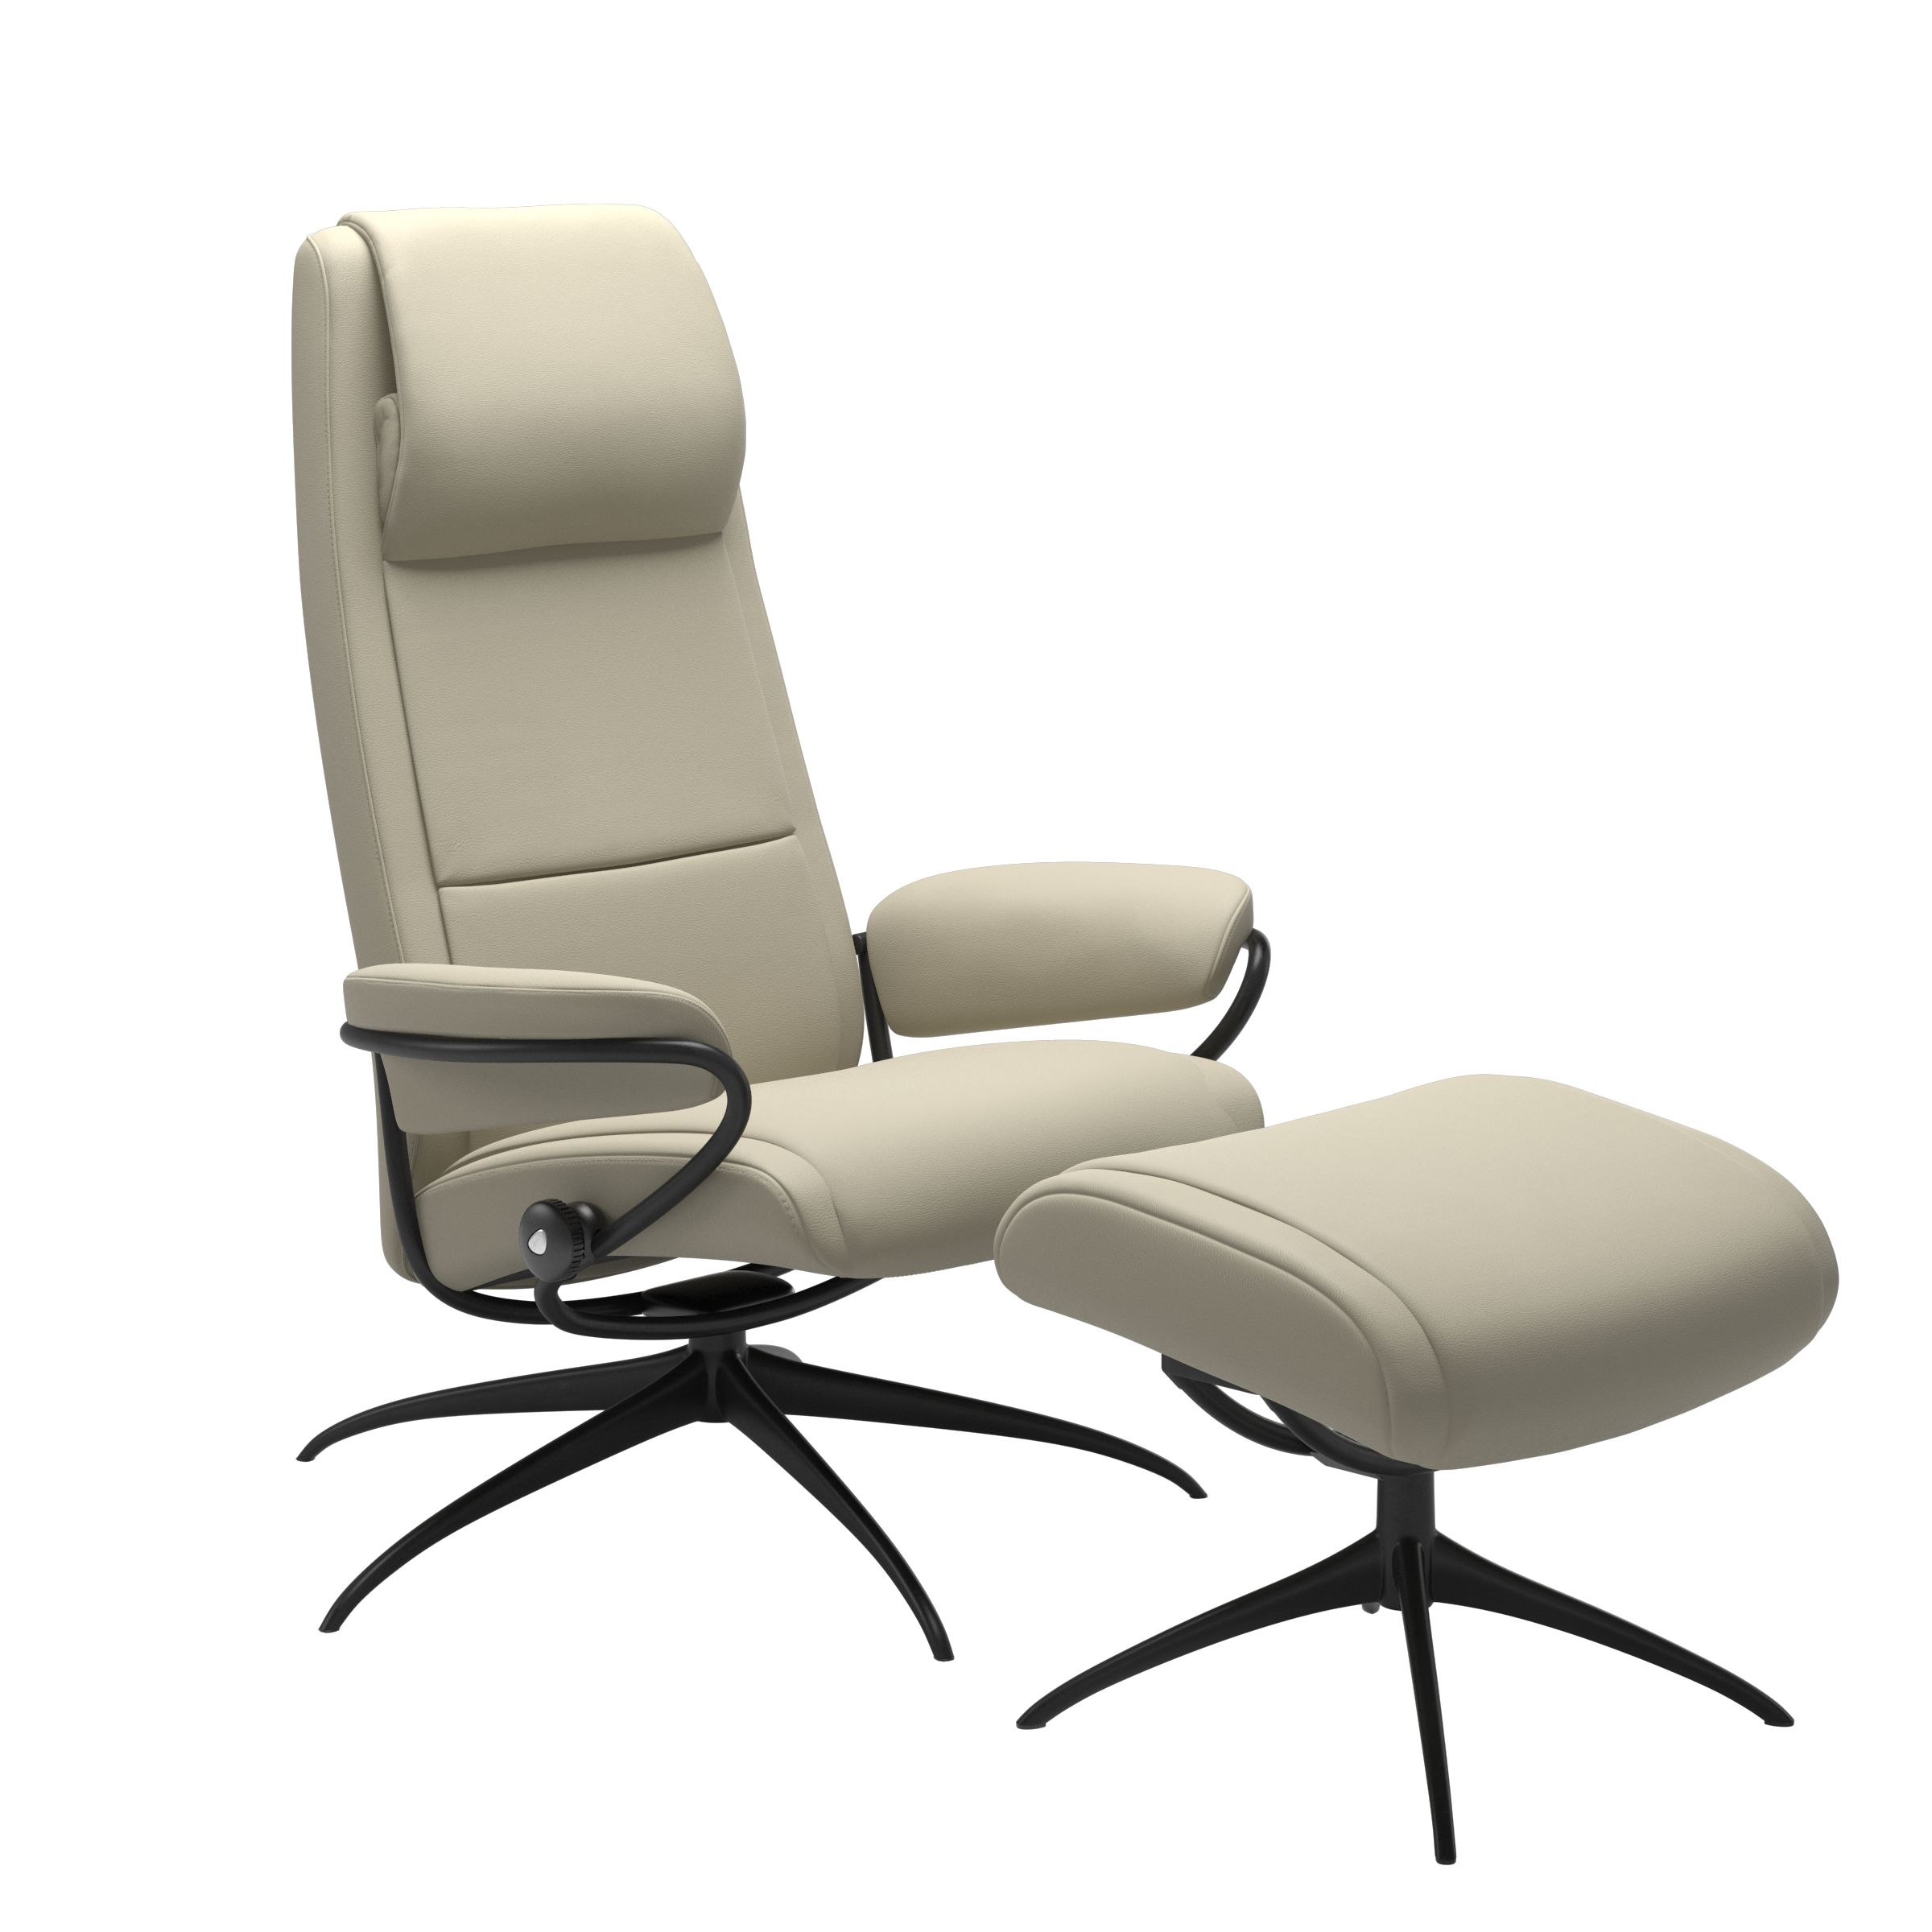 Fauteuil Stressless Nice Stressless Paris Starbase High Back Recliners